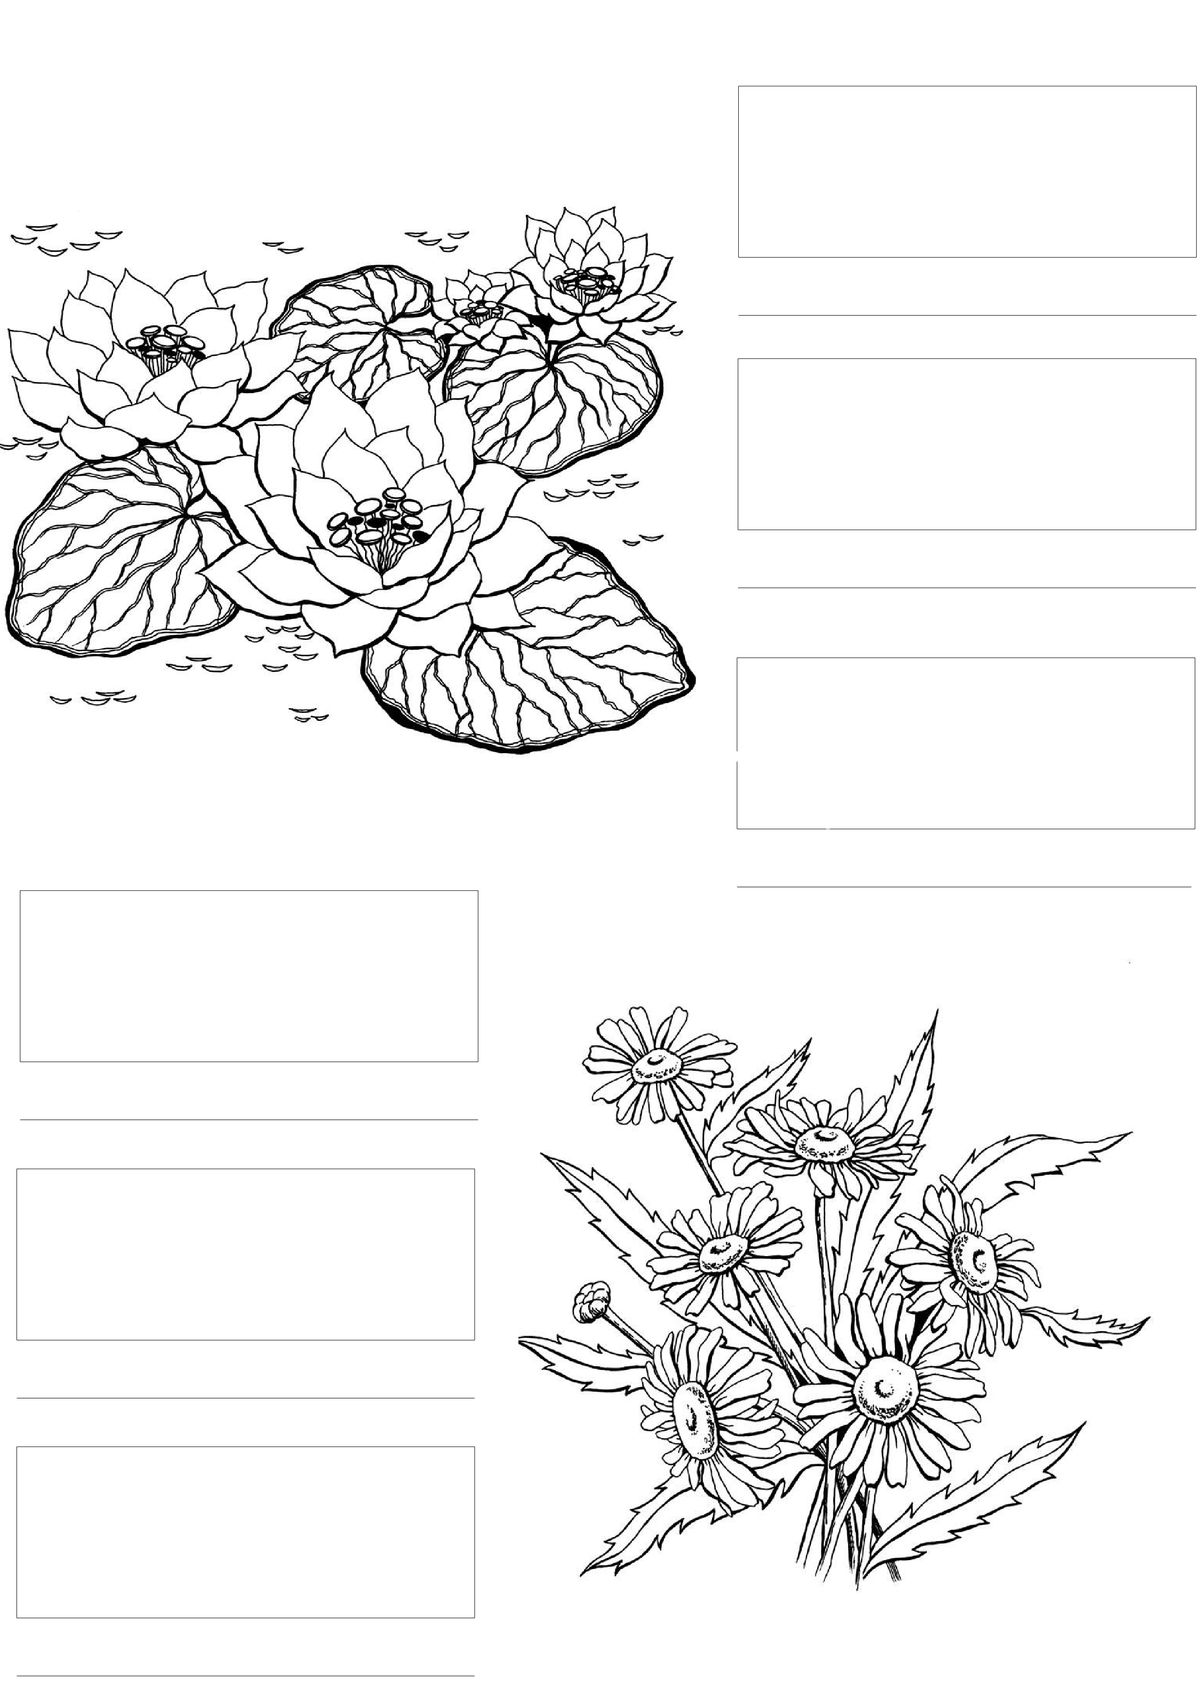 coloring pages with color guide unicorn coloring guide jade summer time coloring with color guide coloring pages